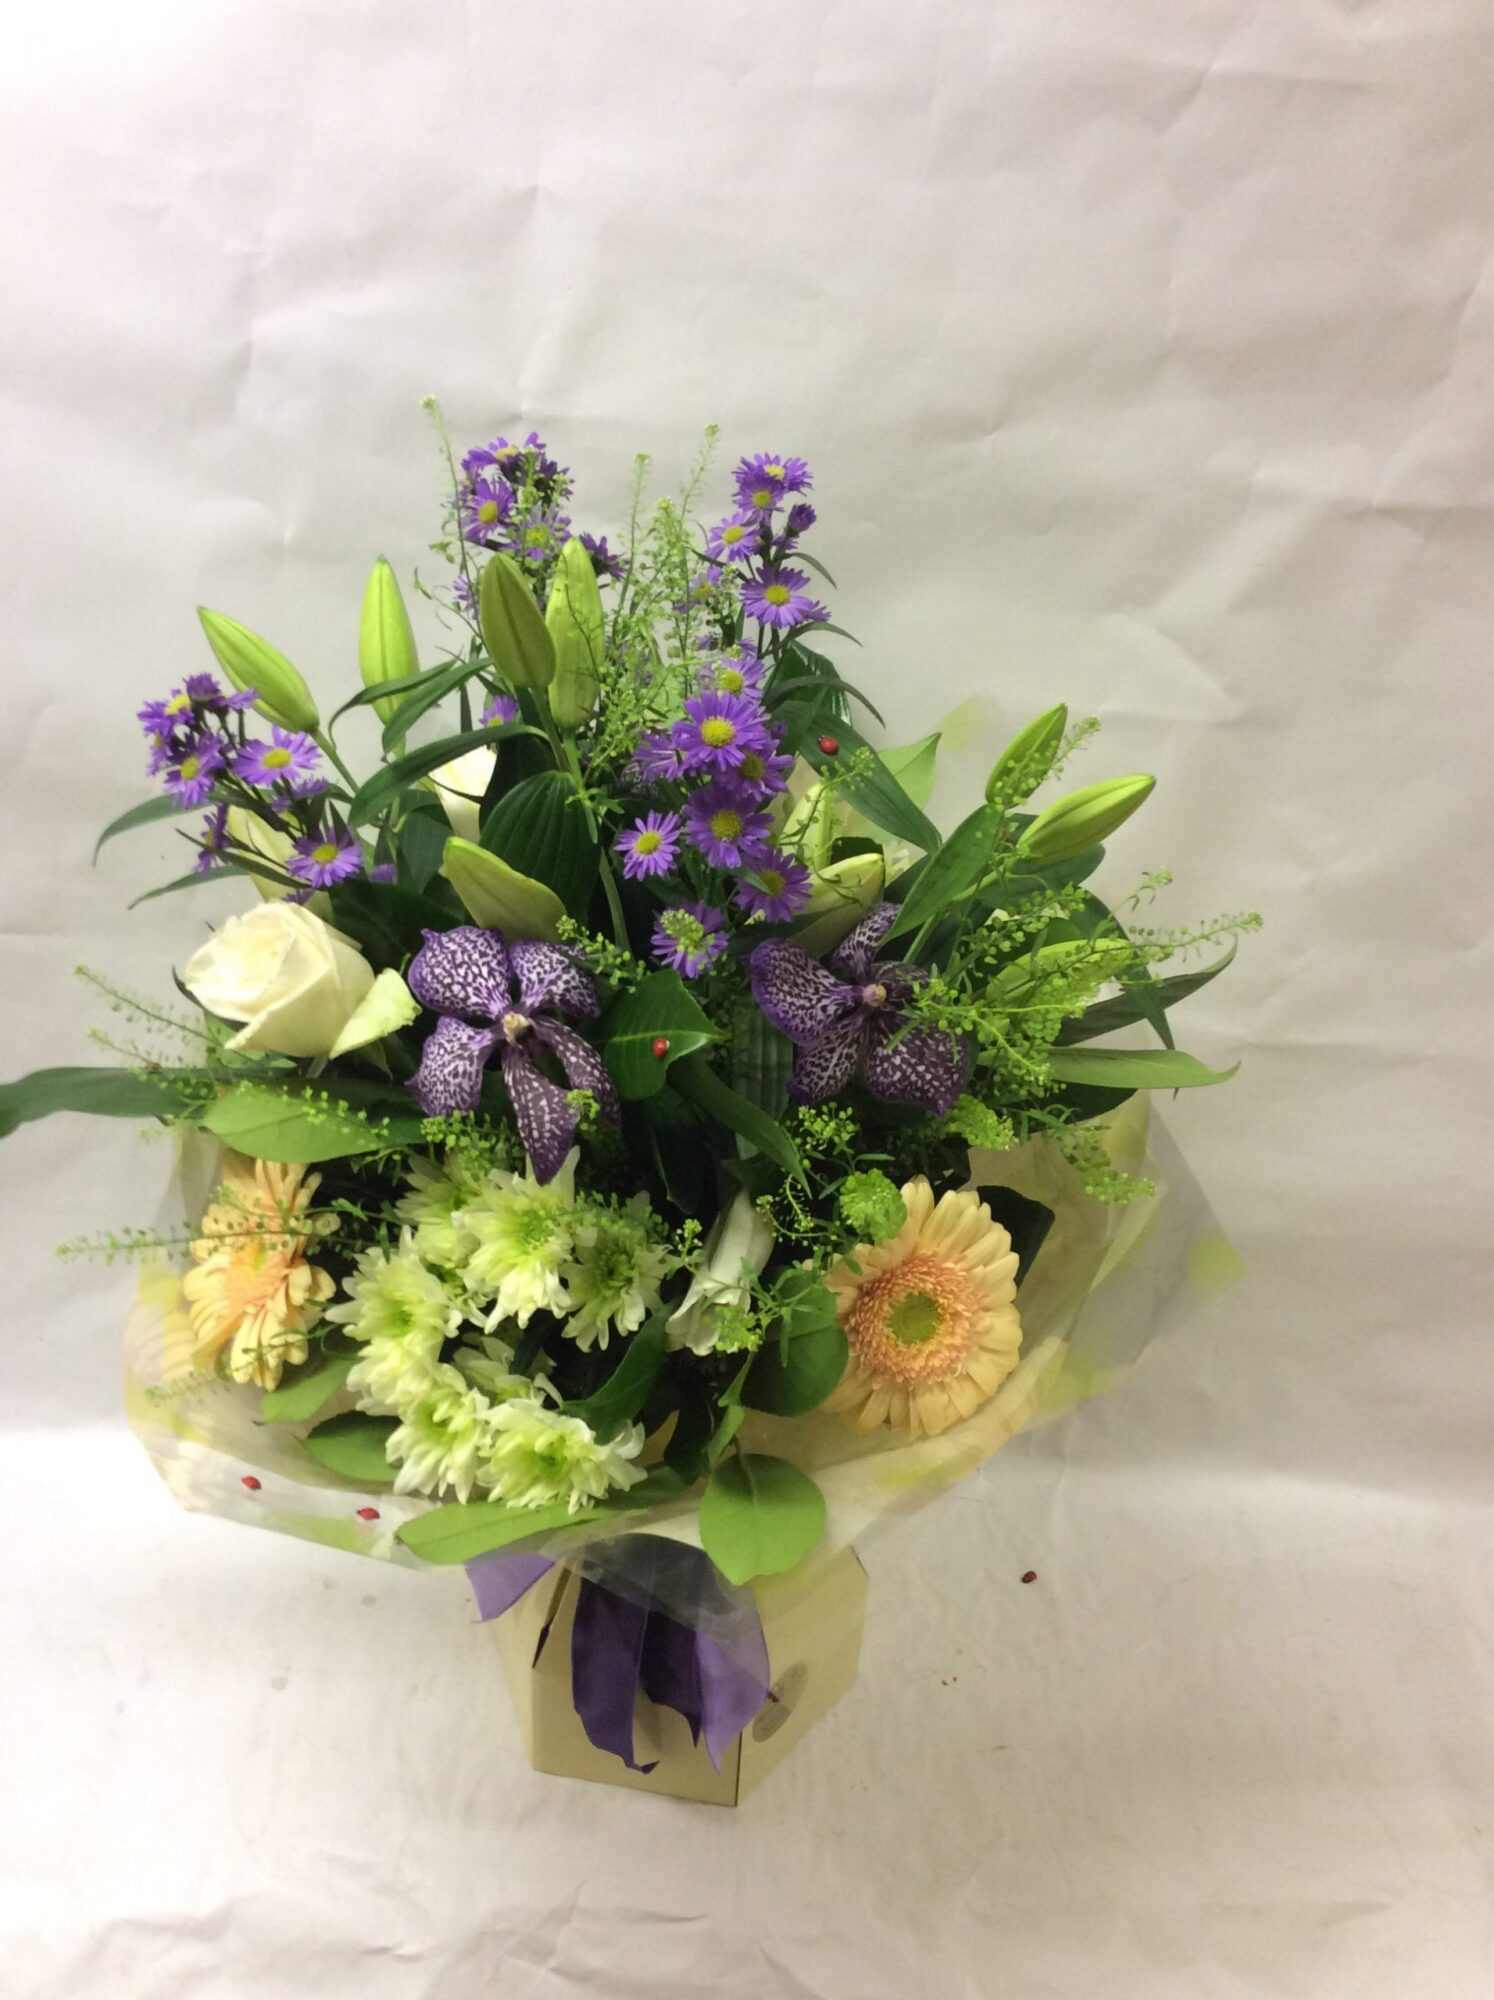 This gorgeous, bespoke handtied consists of lilies, vanda orchids, gerberas, chrysanthemum, roses and season permitting, September flower. This is suitable for any occasion, including birthdays, anniversaries, thank you, etc.